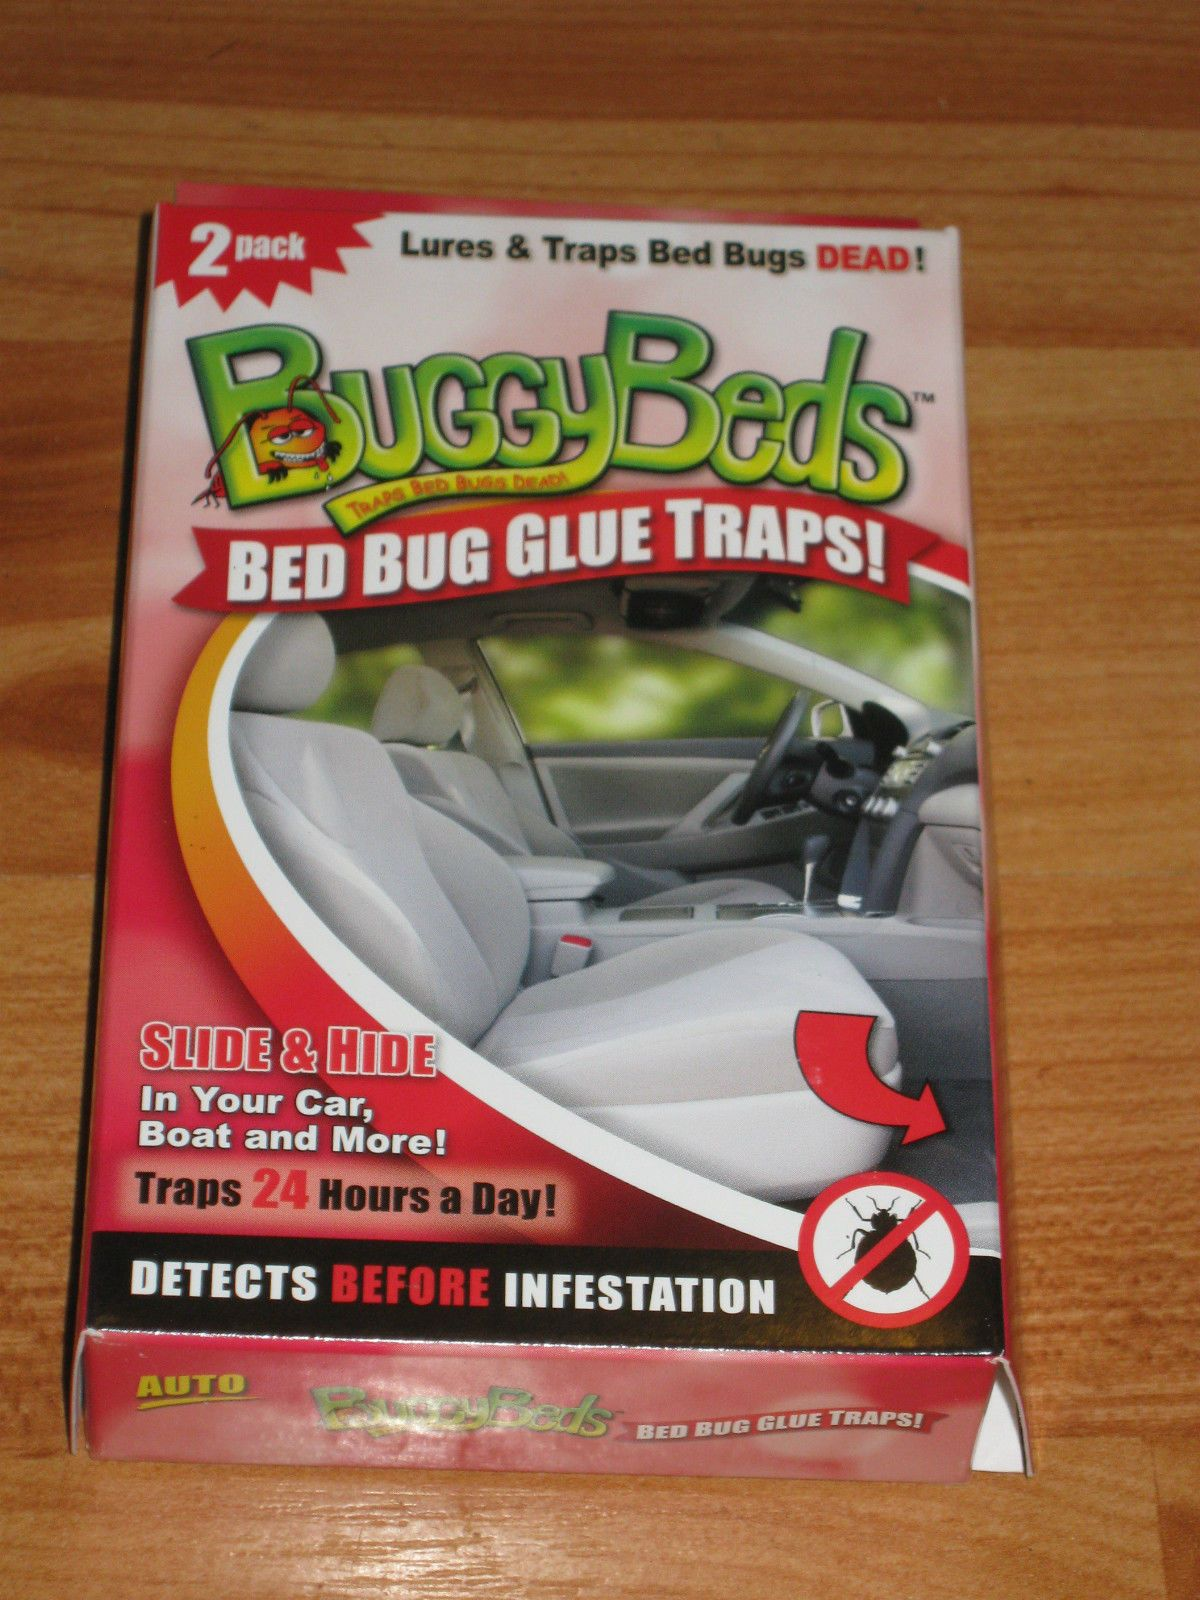 2 New Auto Bed Bug Monitors Glue Traps from Buggybeds